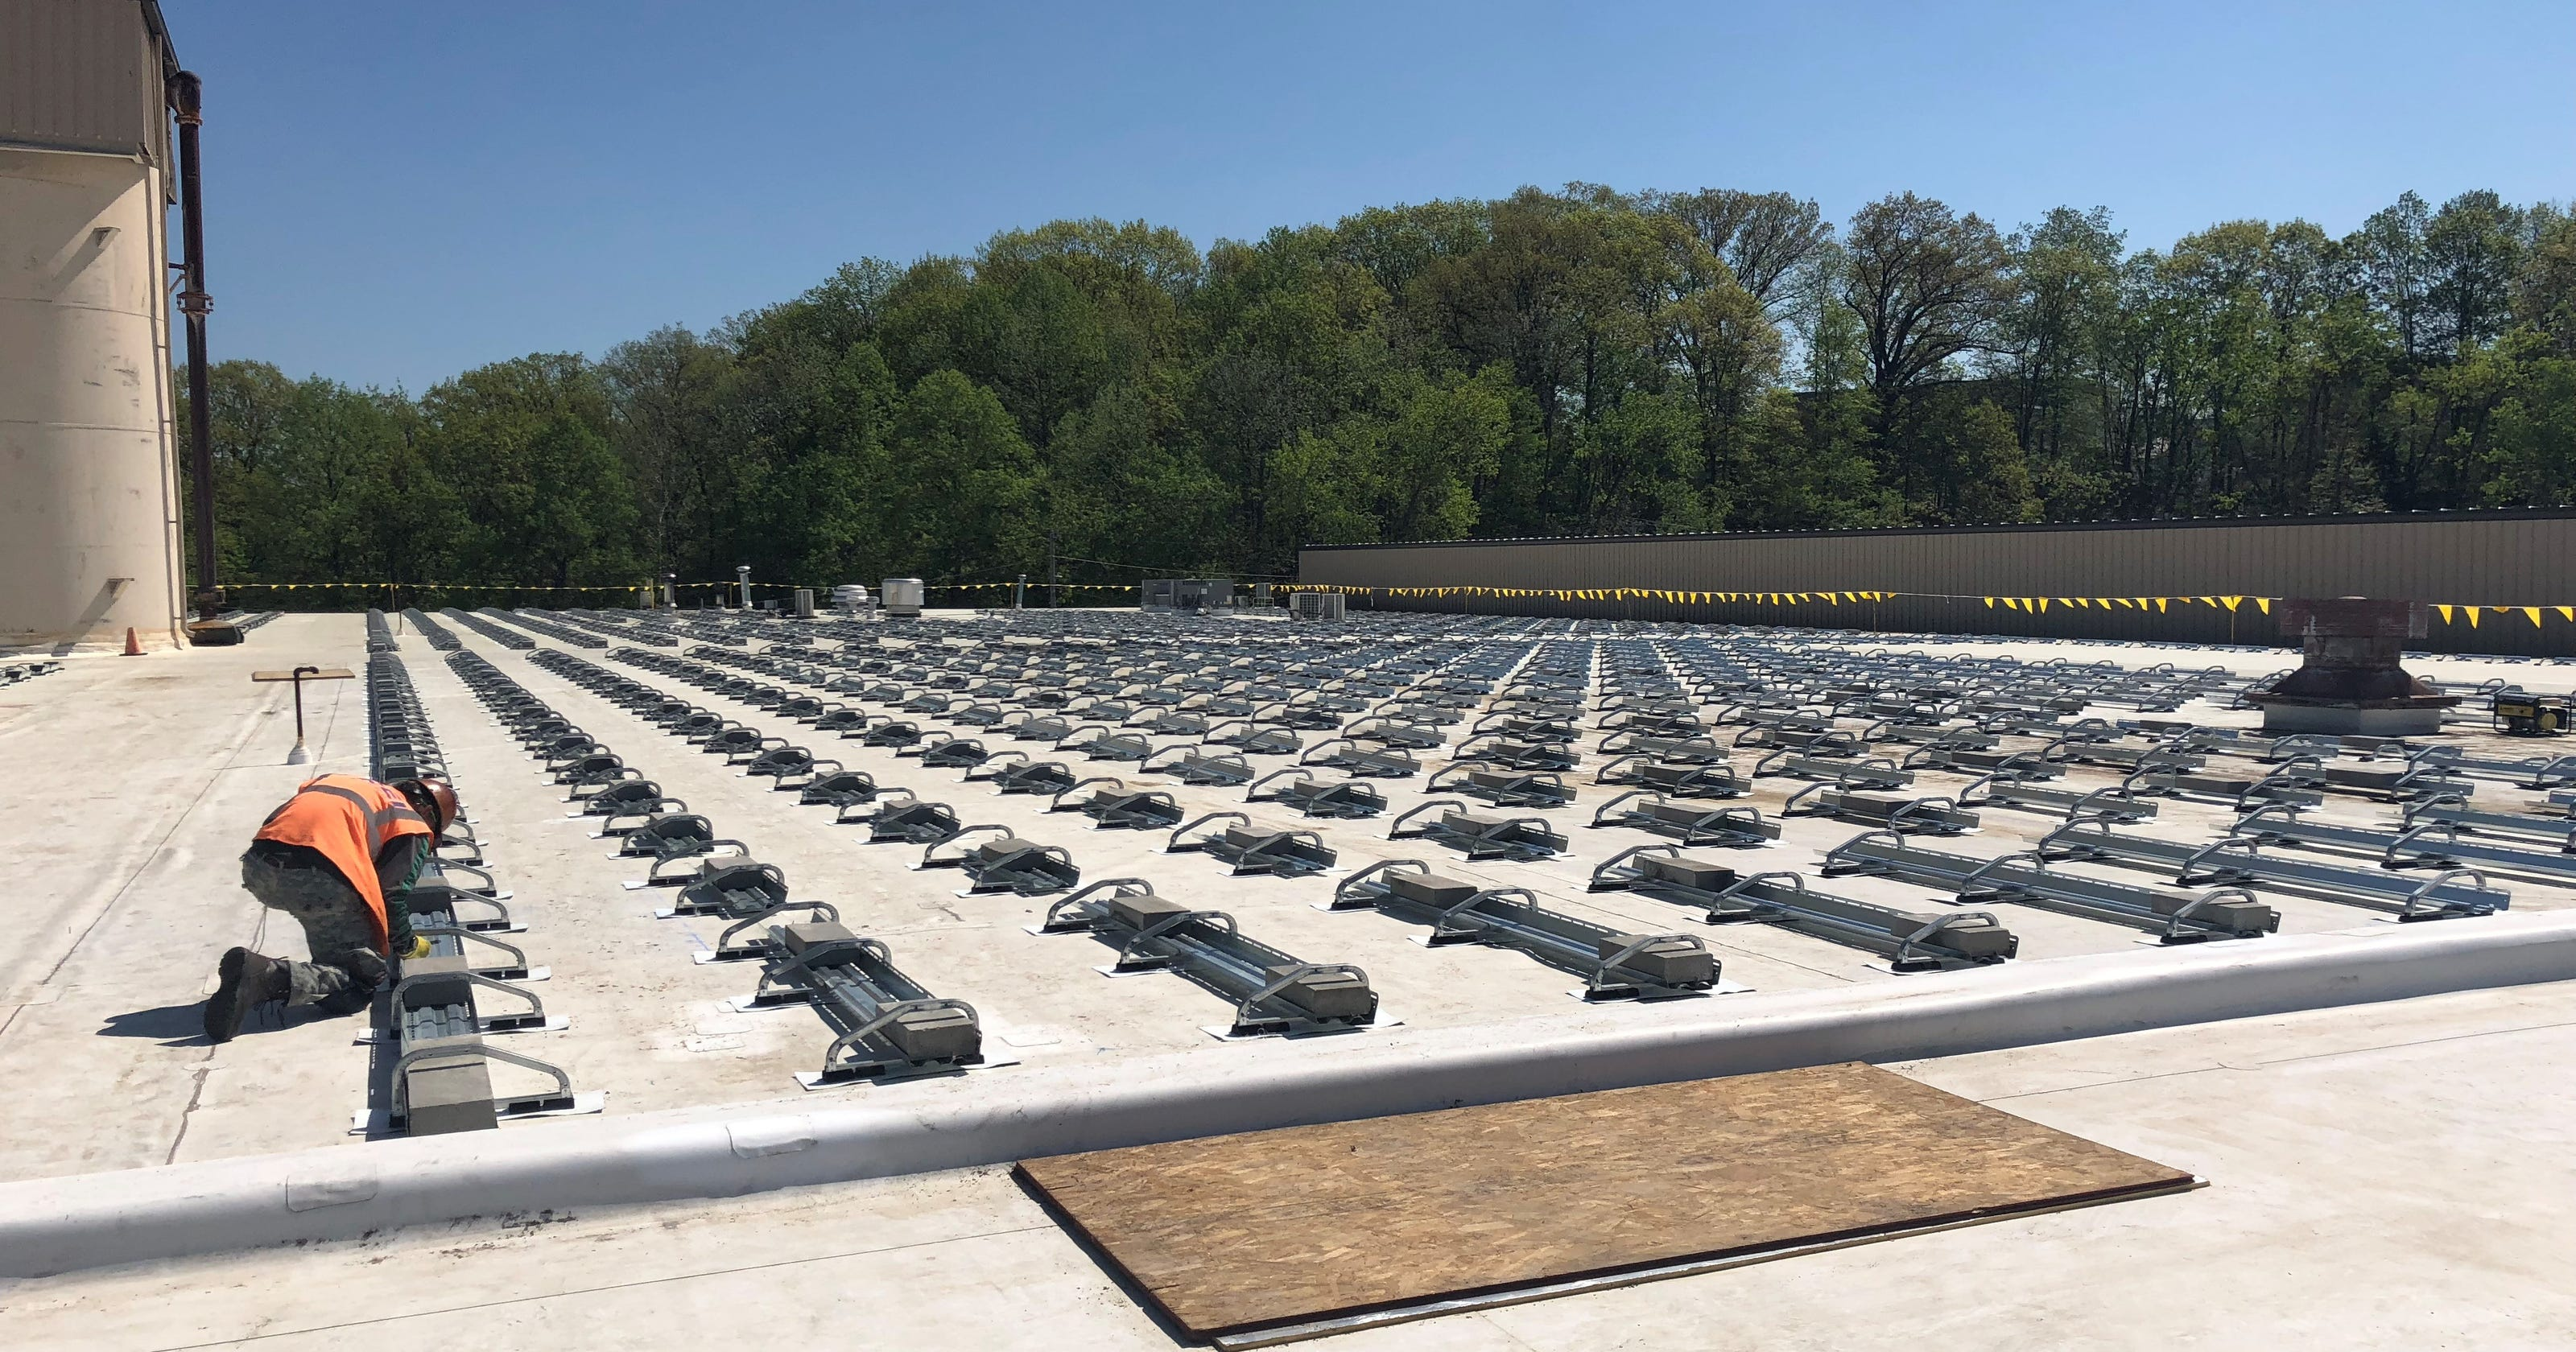 Buchanan rooftop solar project will be state's largest